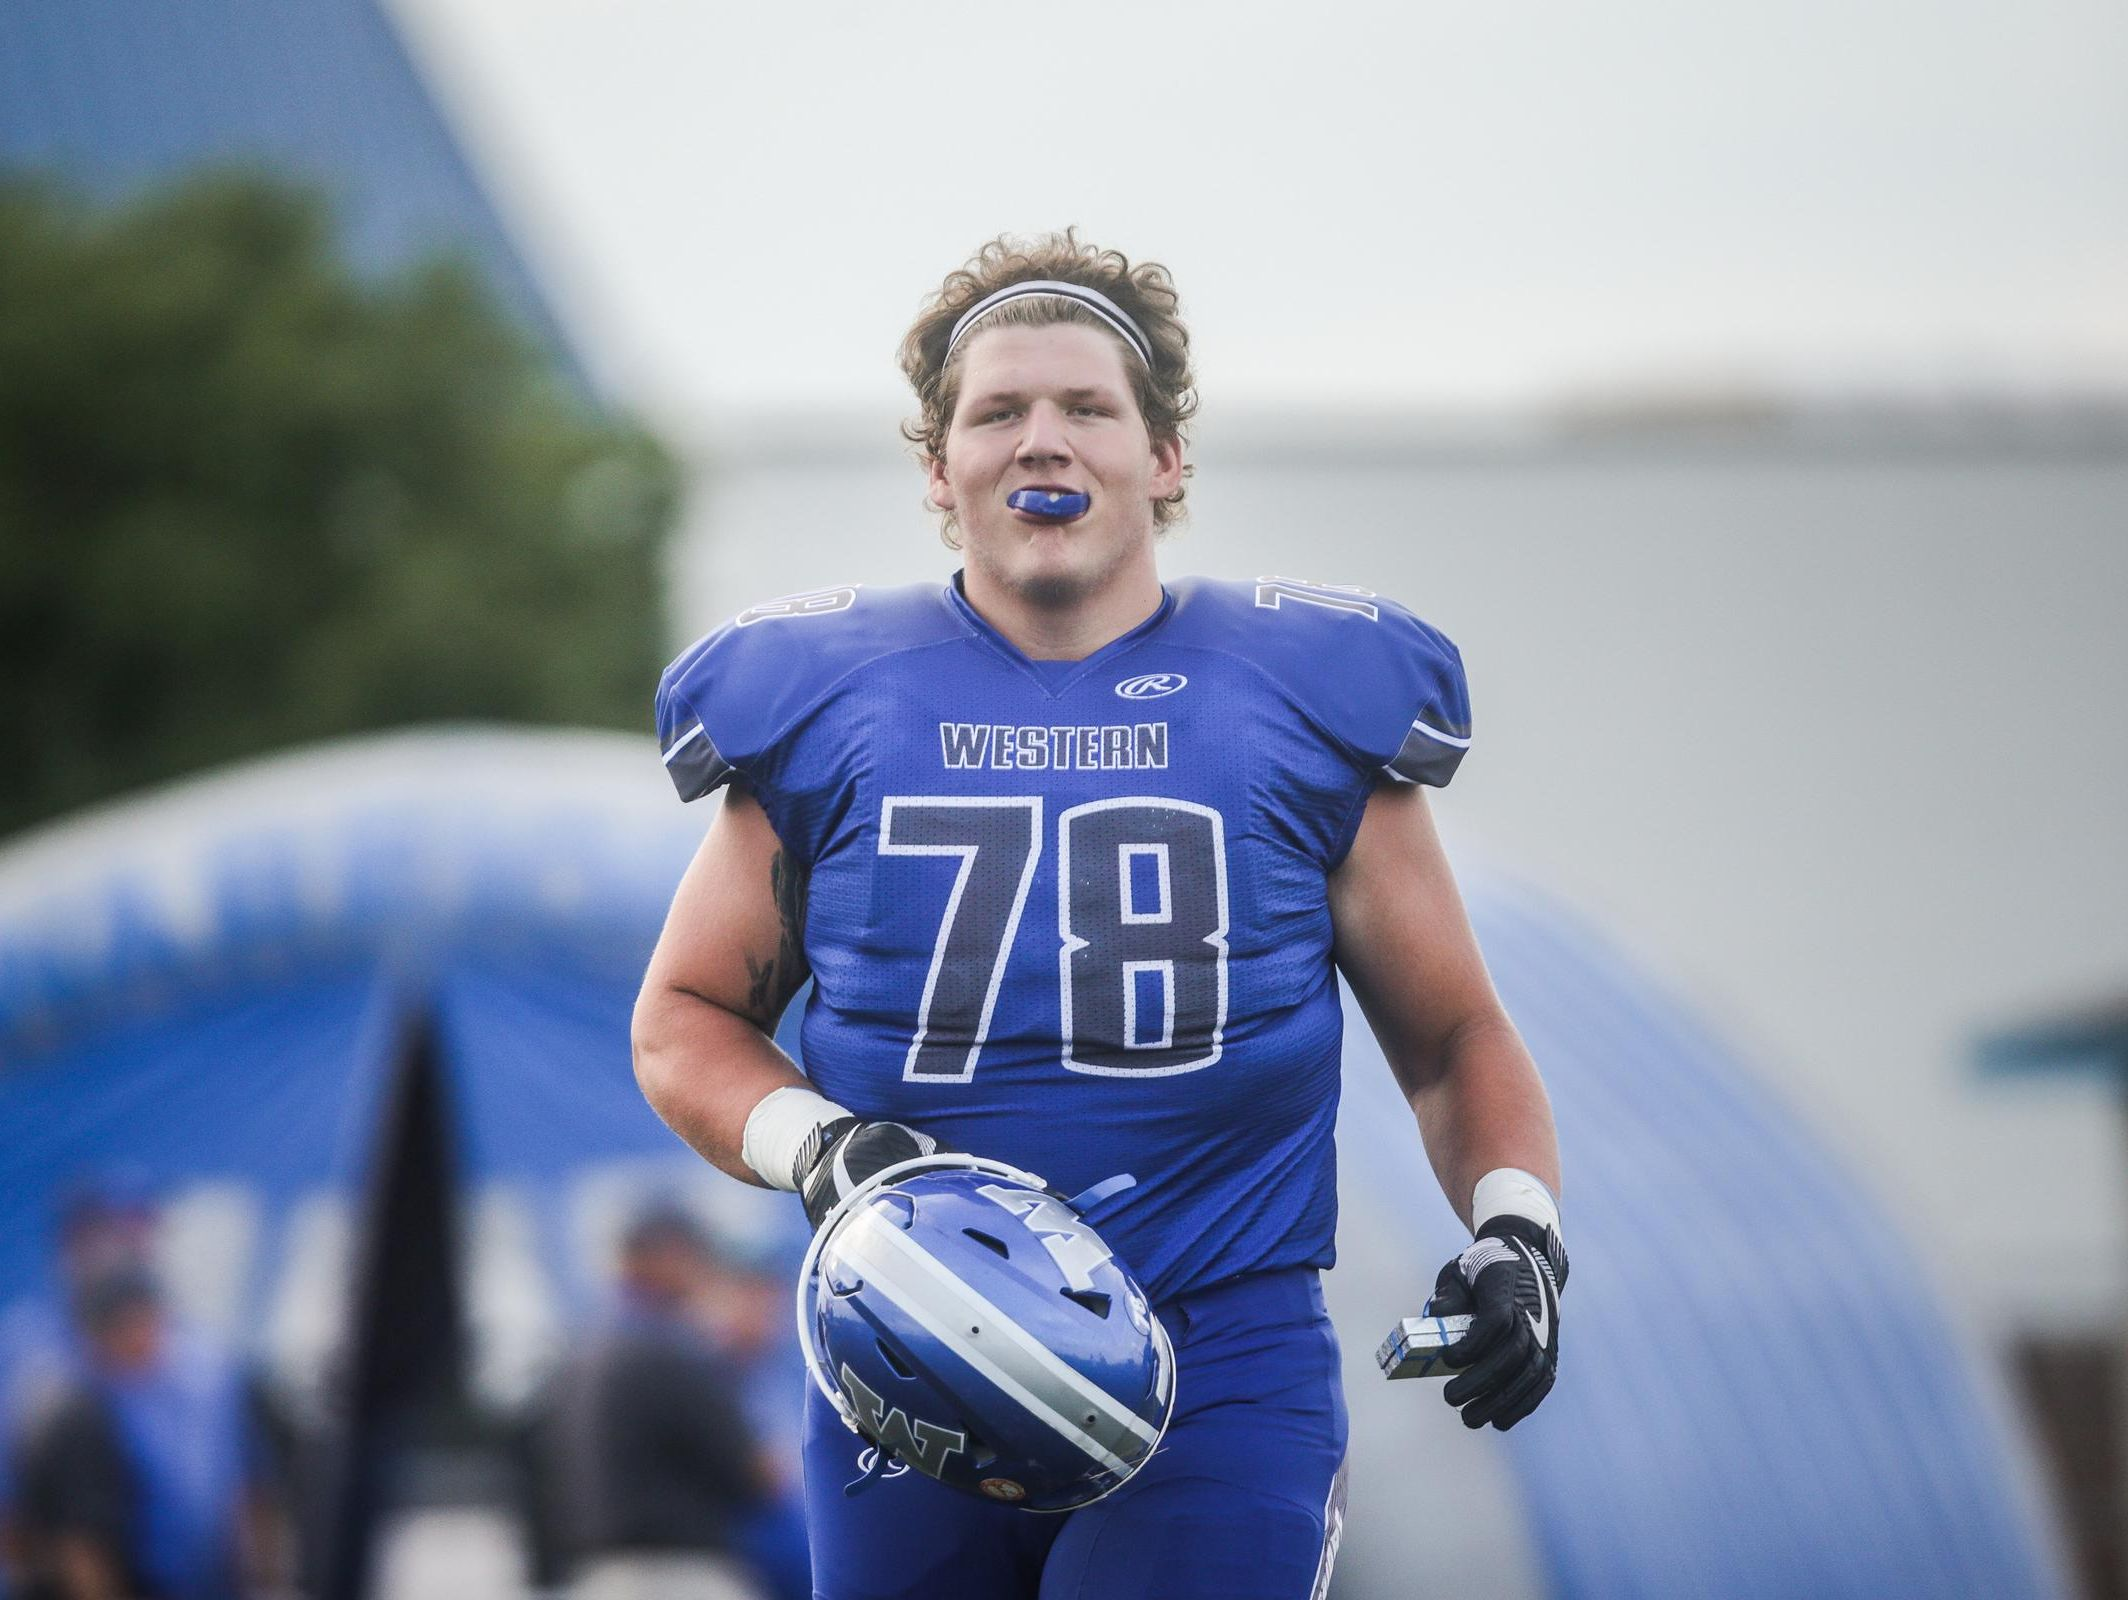 Walled Lake Western's Robert Hudson before his team game against Northville on Monday, September 9, 2016, at Warriors Stadium in Walled Lake, MI.